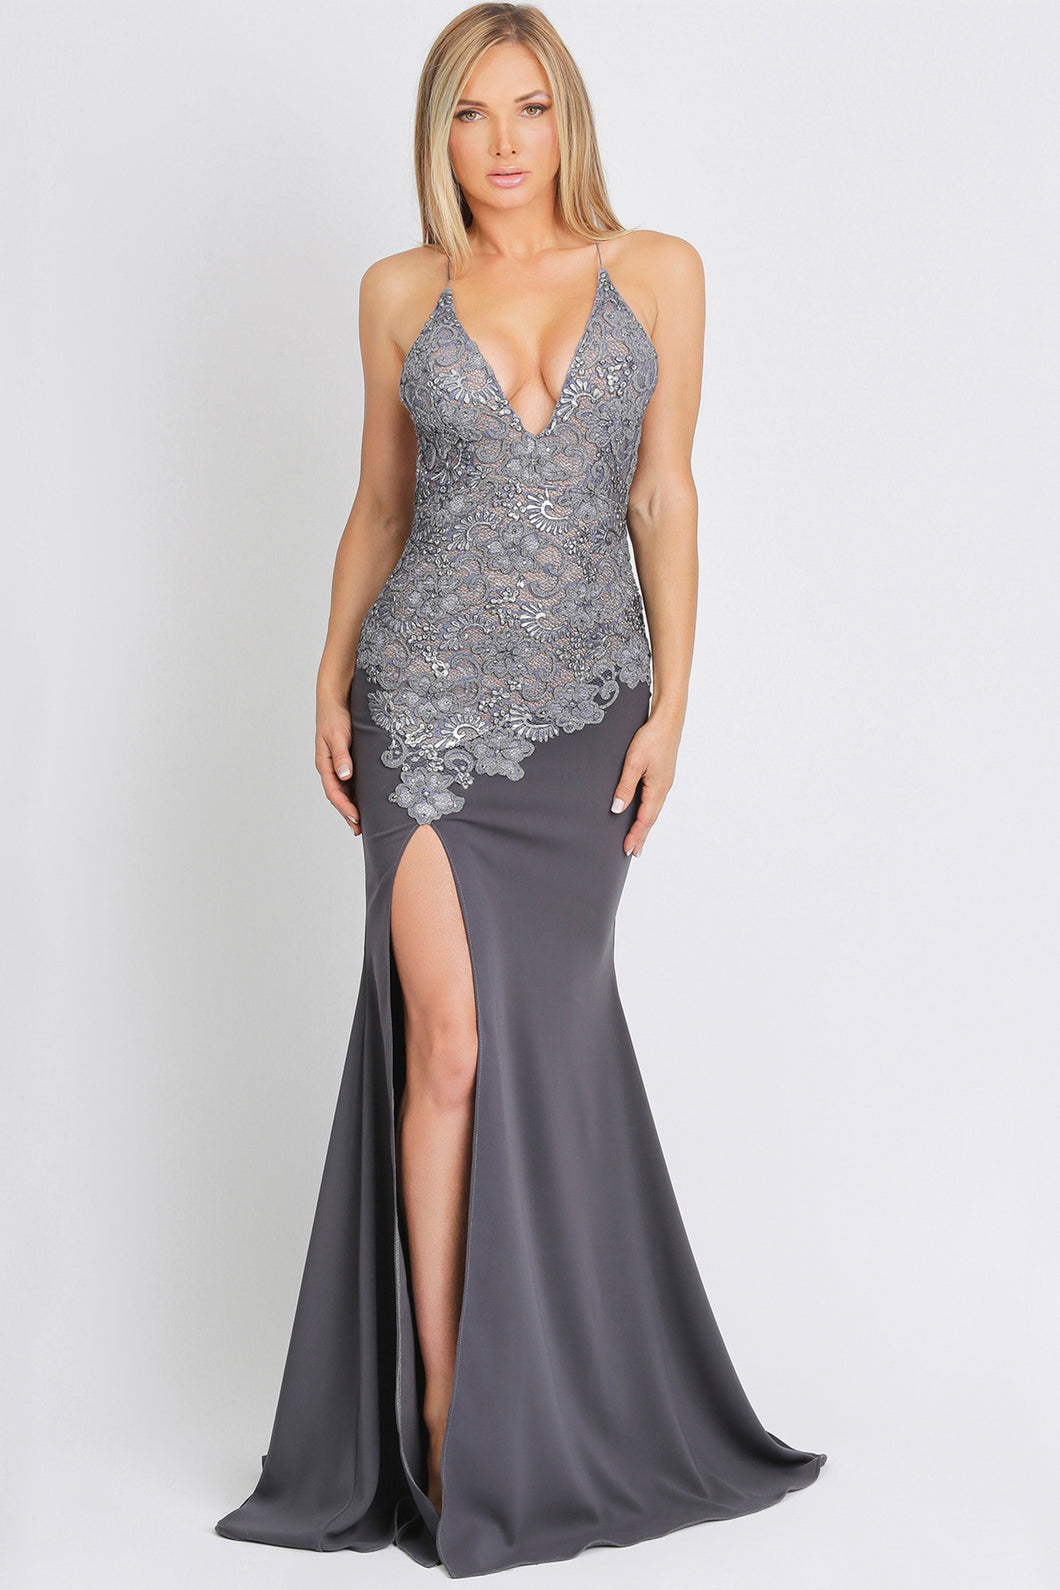 Danna Caviar Jersey Grey Long Party Dress - BACCIO Couture